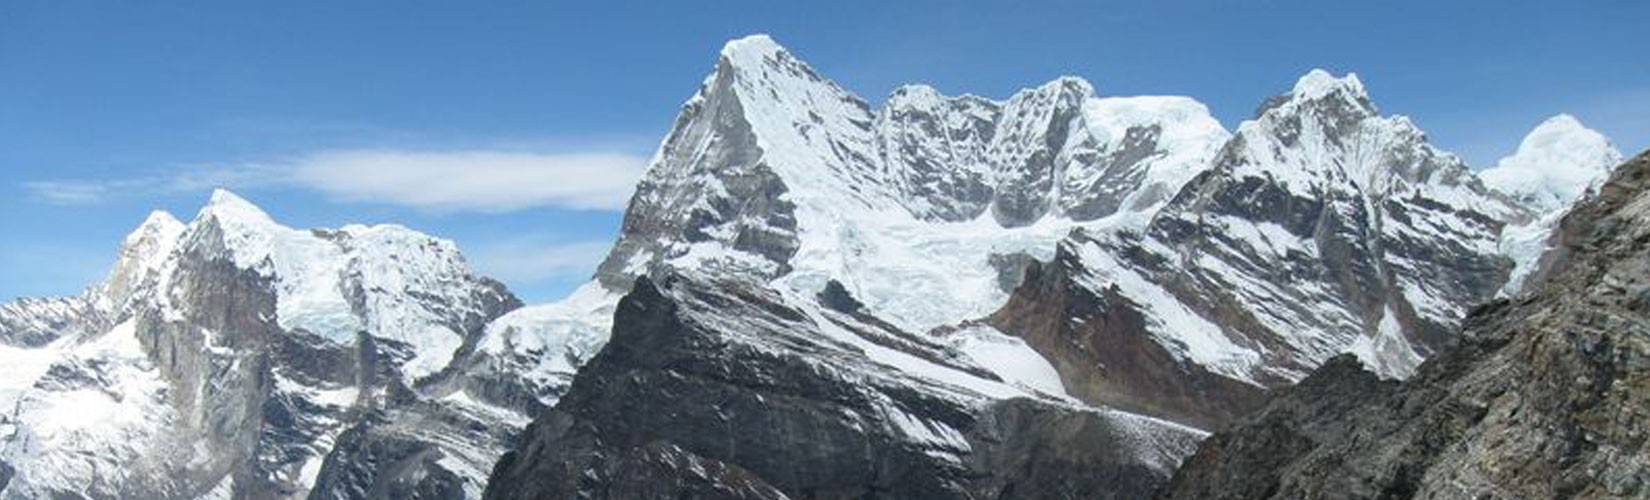 Everest Base Camp Trek with Island Peak